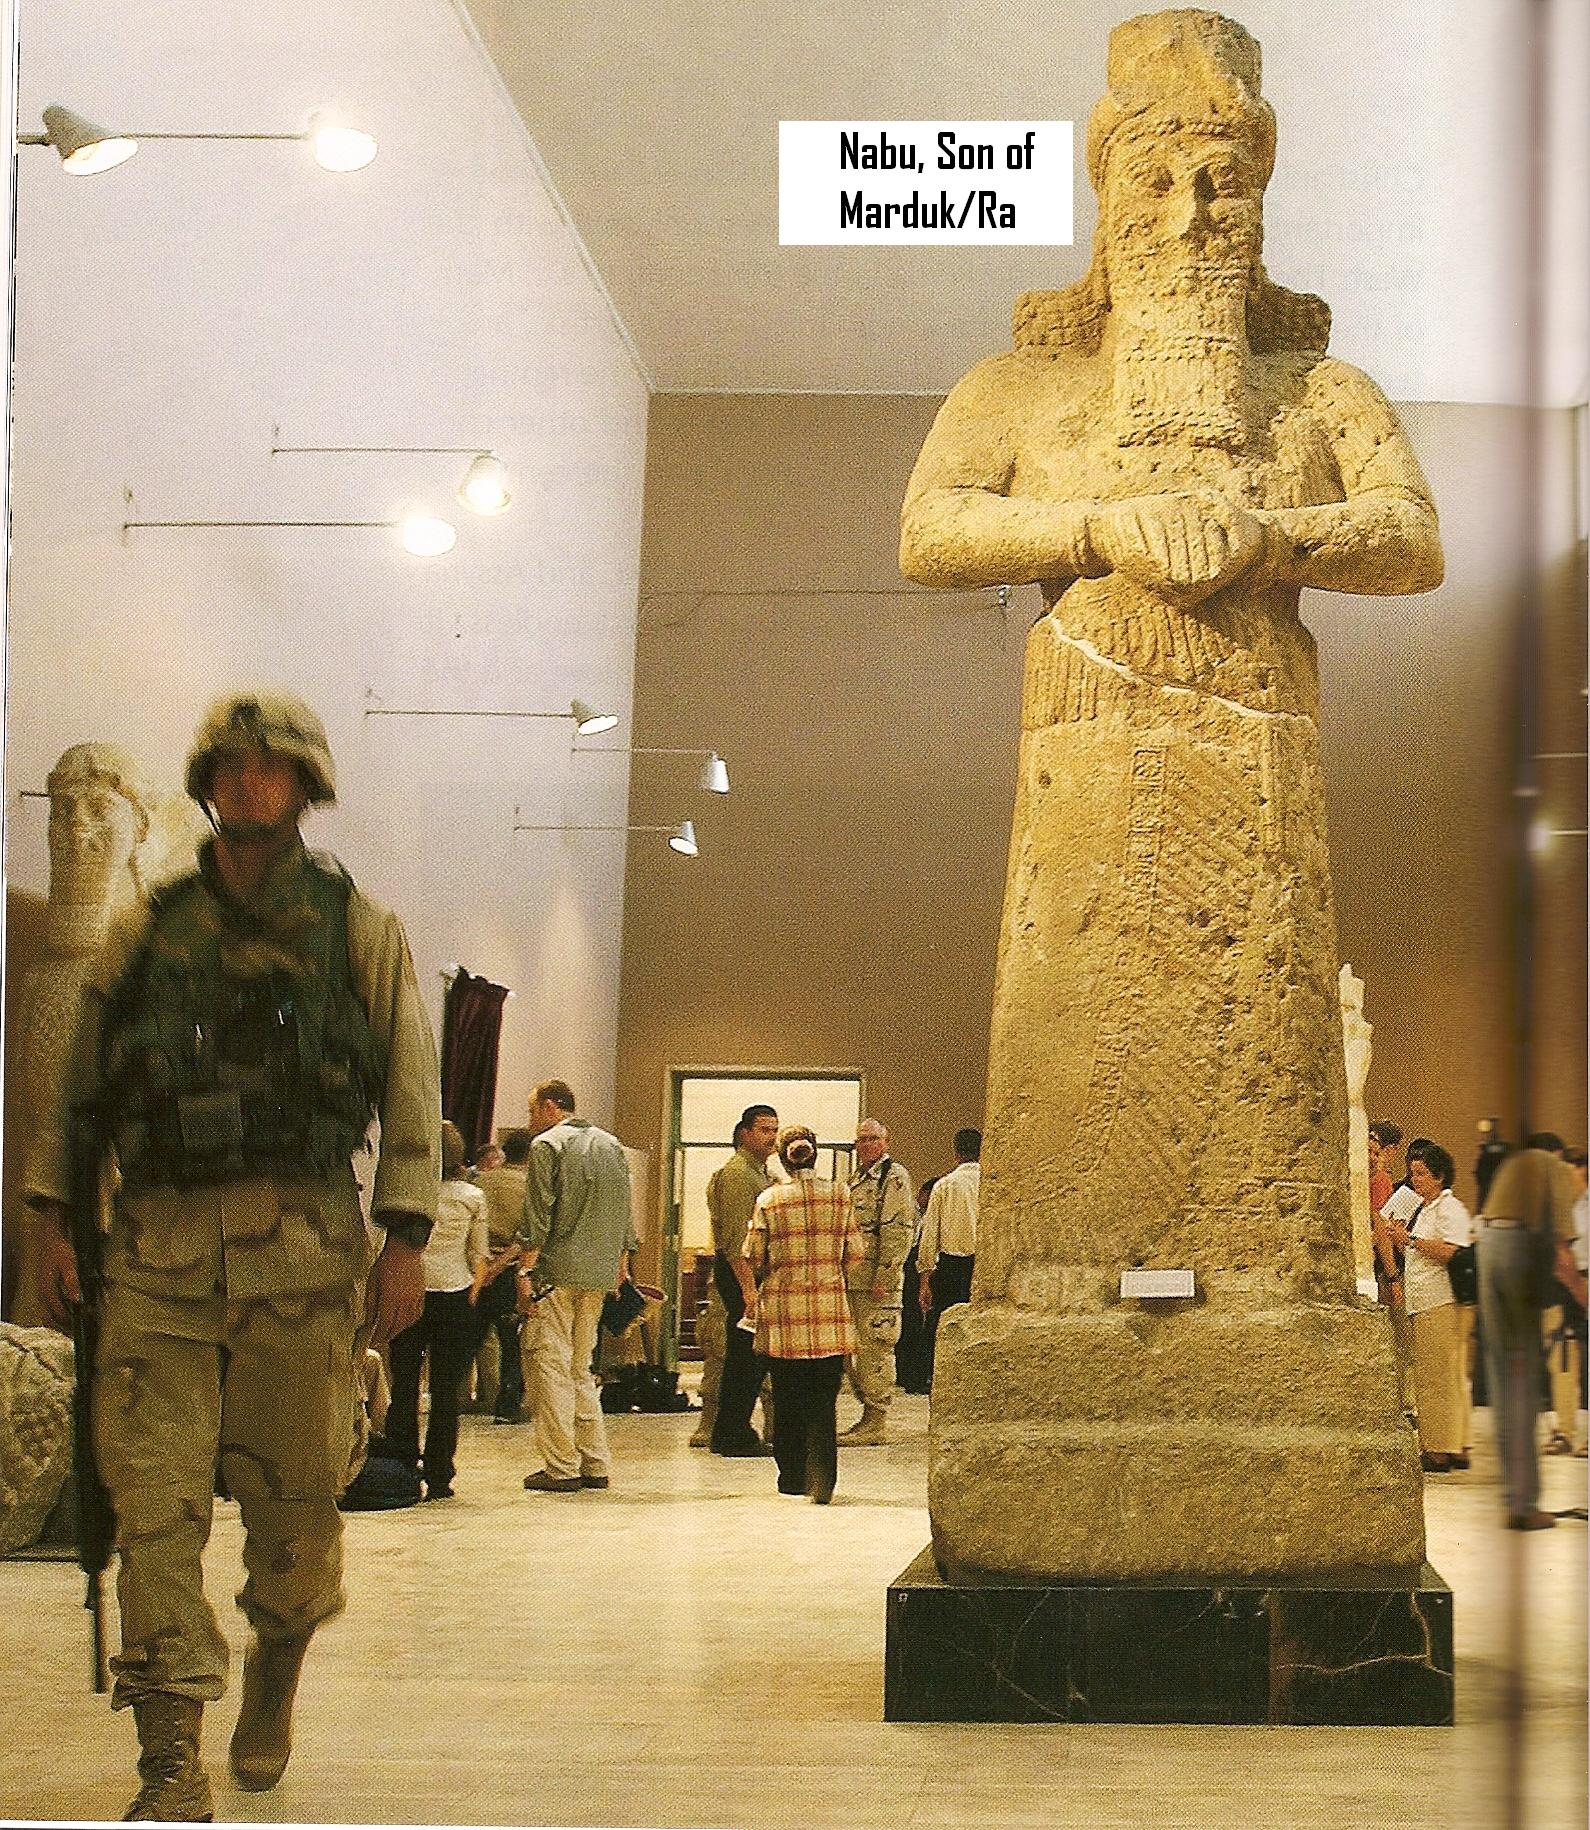 2bb - god Nabu & the US Army in a museum in Iraq, this artefact & the museum were destroyed by Radical Islam, arrempting to keep their followers clueless as to the direct contradictions to Islam, evidenced by ancient artefacts numbering in the hundreds of thousands, the gods walked & talked with earthlings for tens of thousands of years before 7th century A.D. Islam, no contest as to which is correct with the earthling story